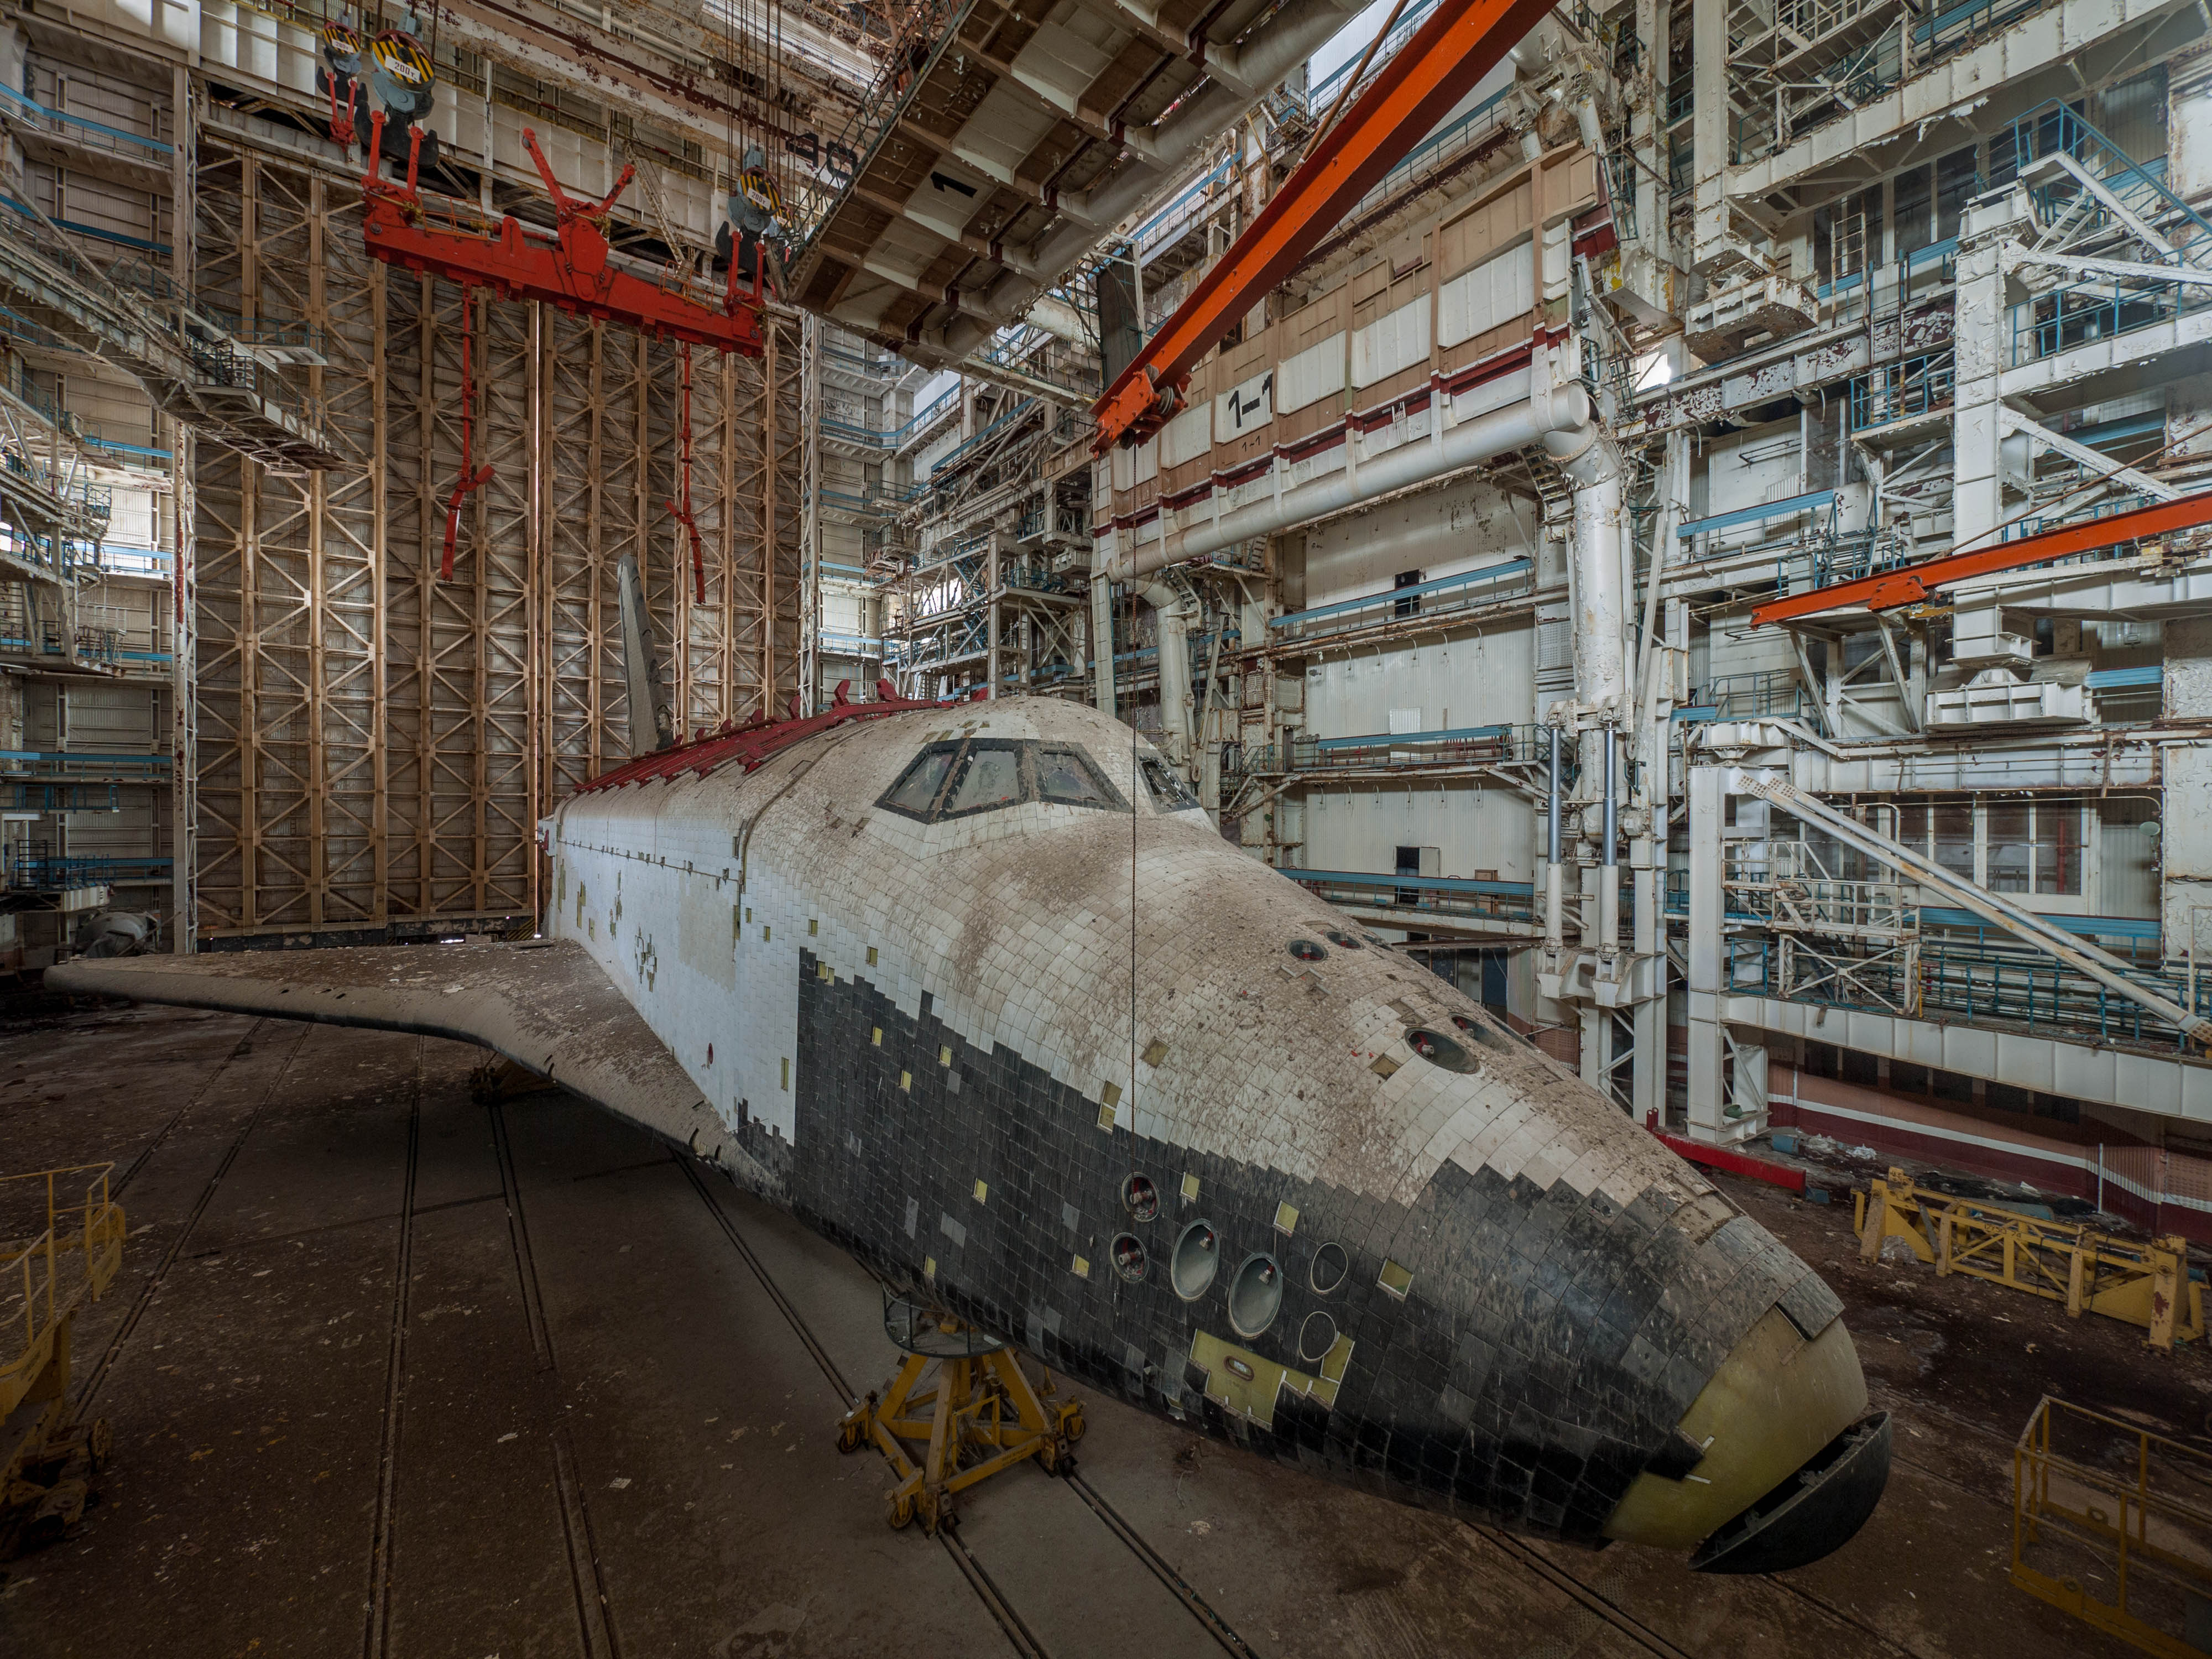 The remains of the Soviet space shuttle program